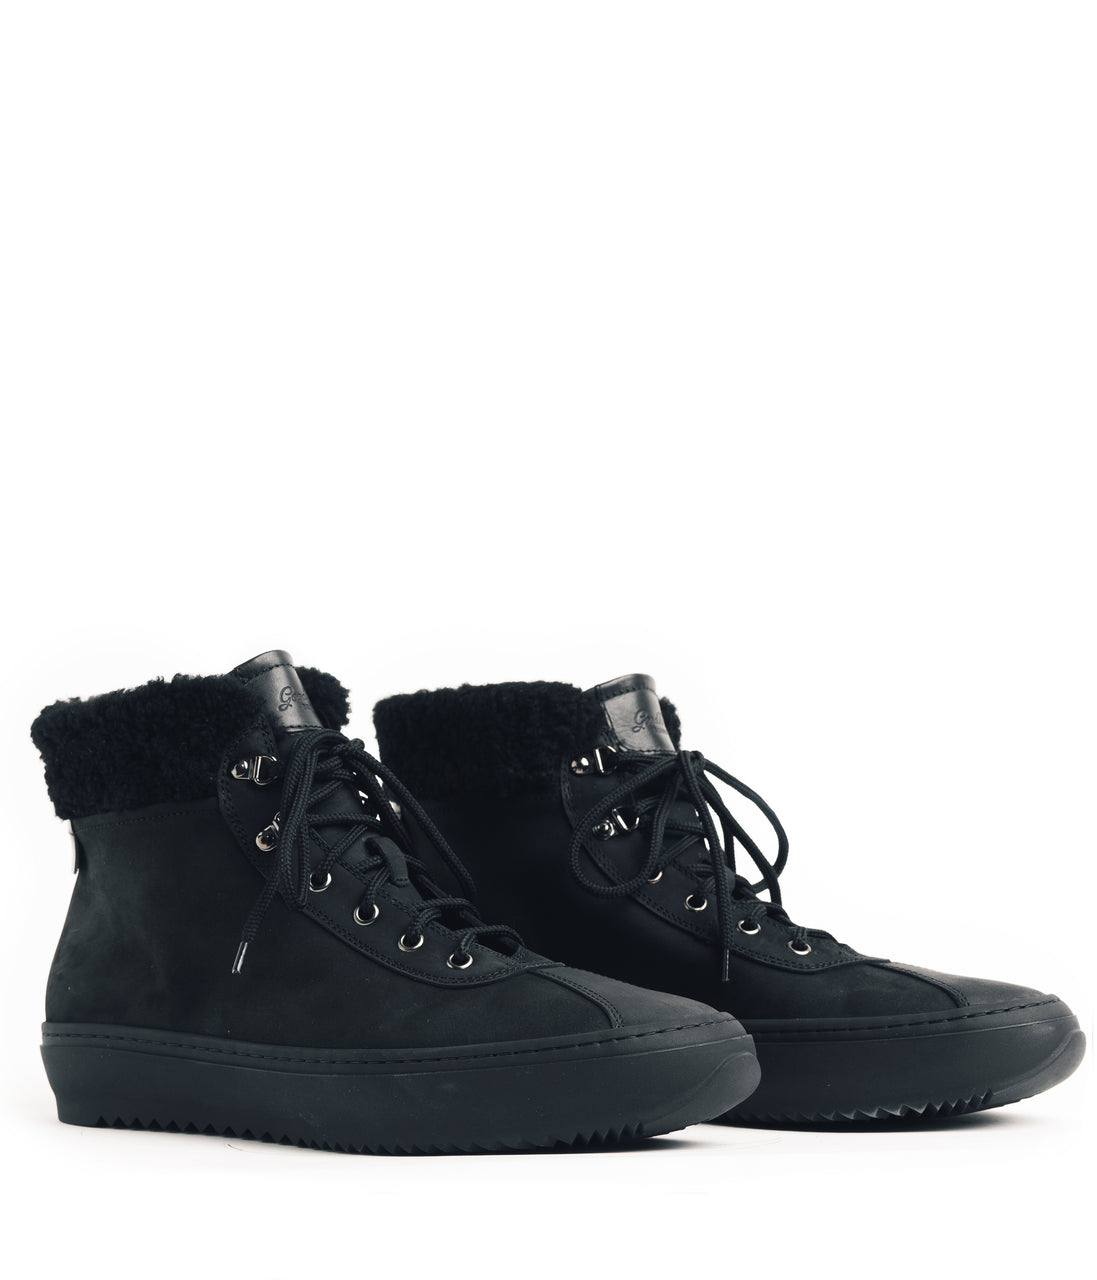 Hiker Street Sneaker - Black - Good Man Brand - Hiker Street Sneaker - Black - Footwear - Good Man Brand